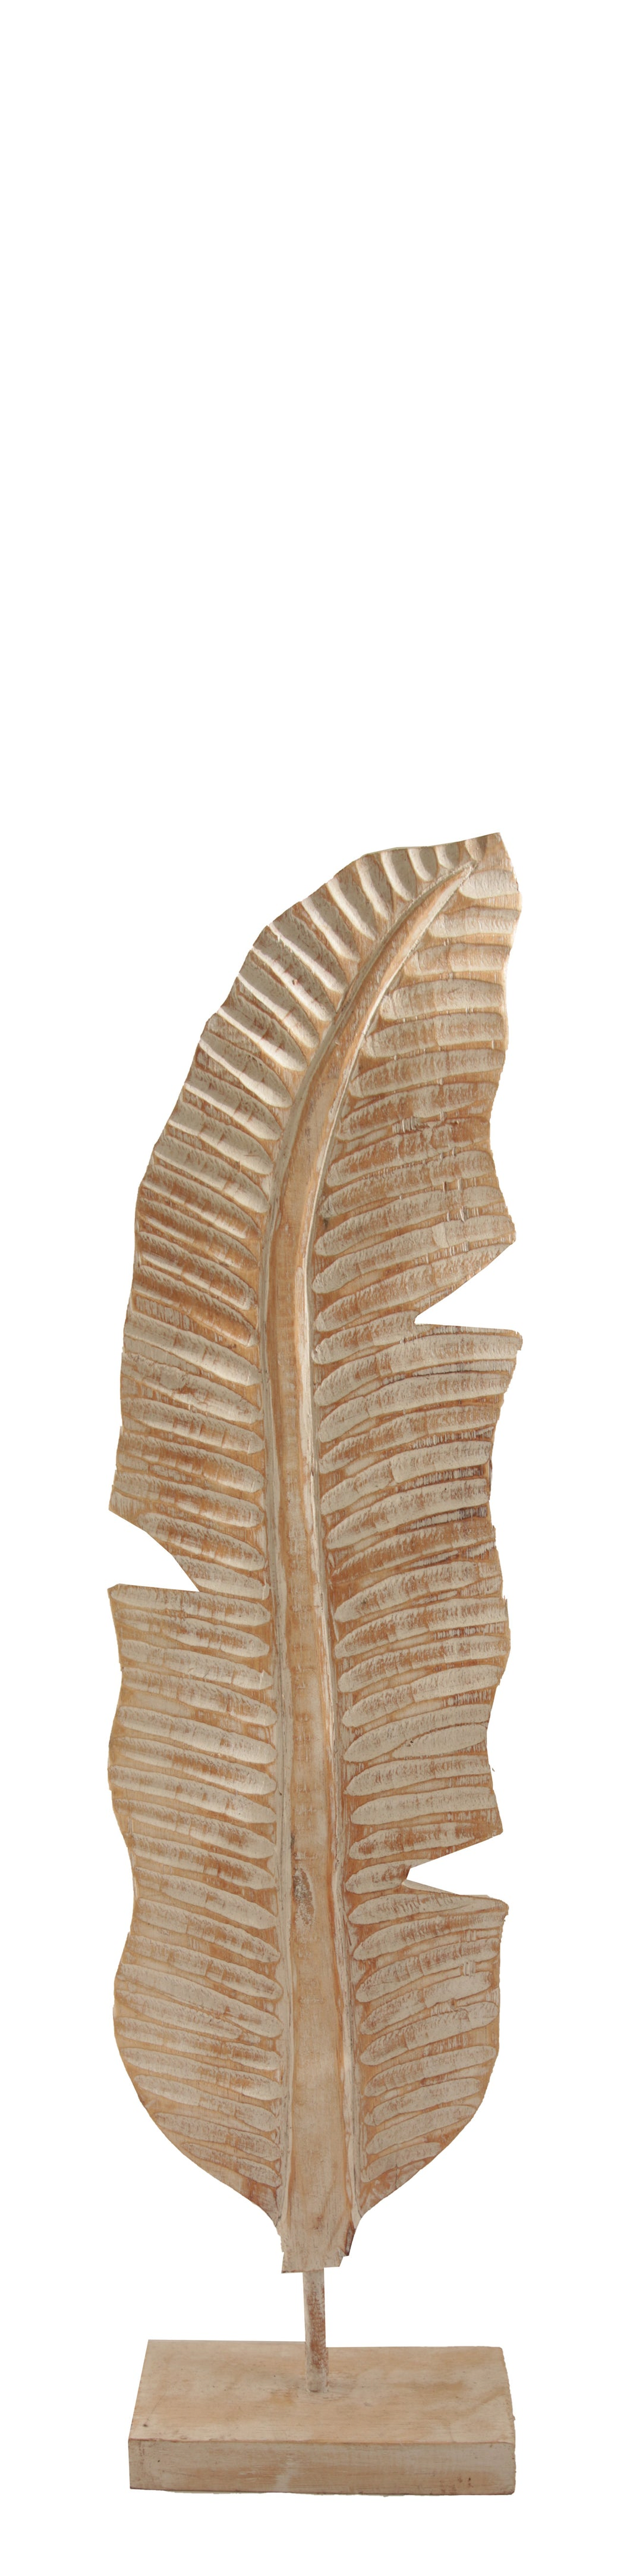 WOODEN WING DECOR CREAM SMALL